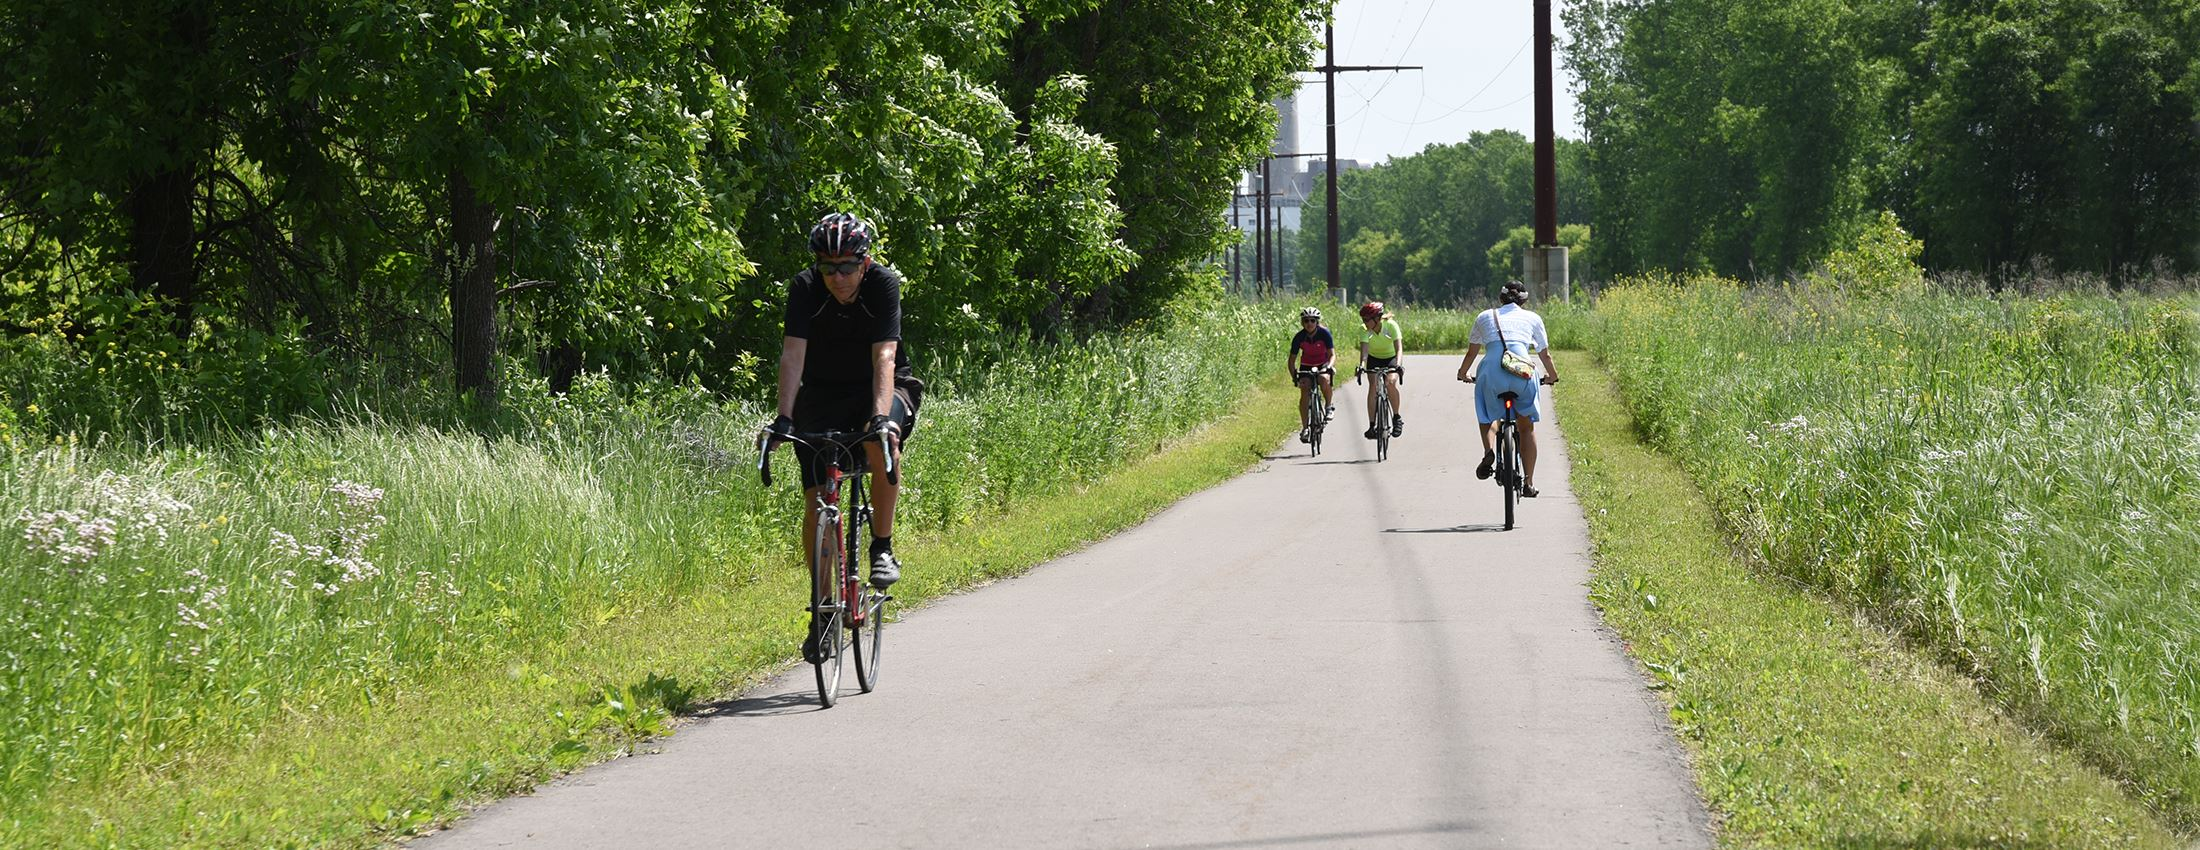 People bike on the Minnesota River Greenway trail